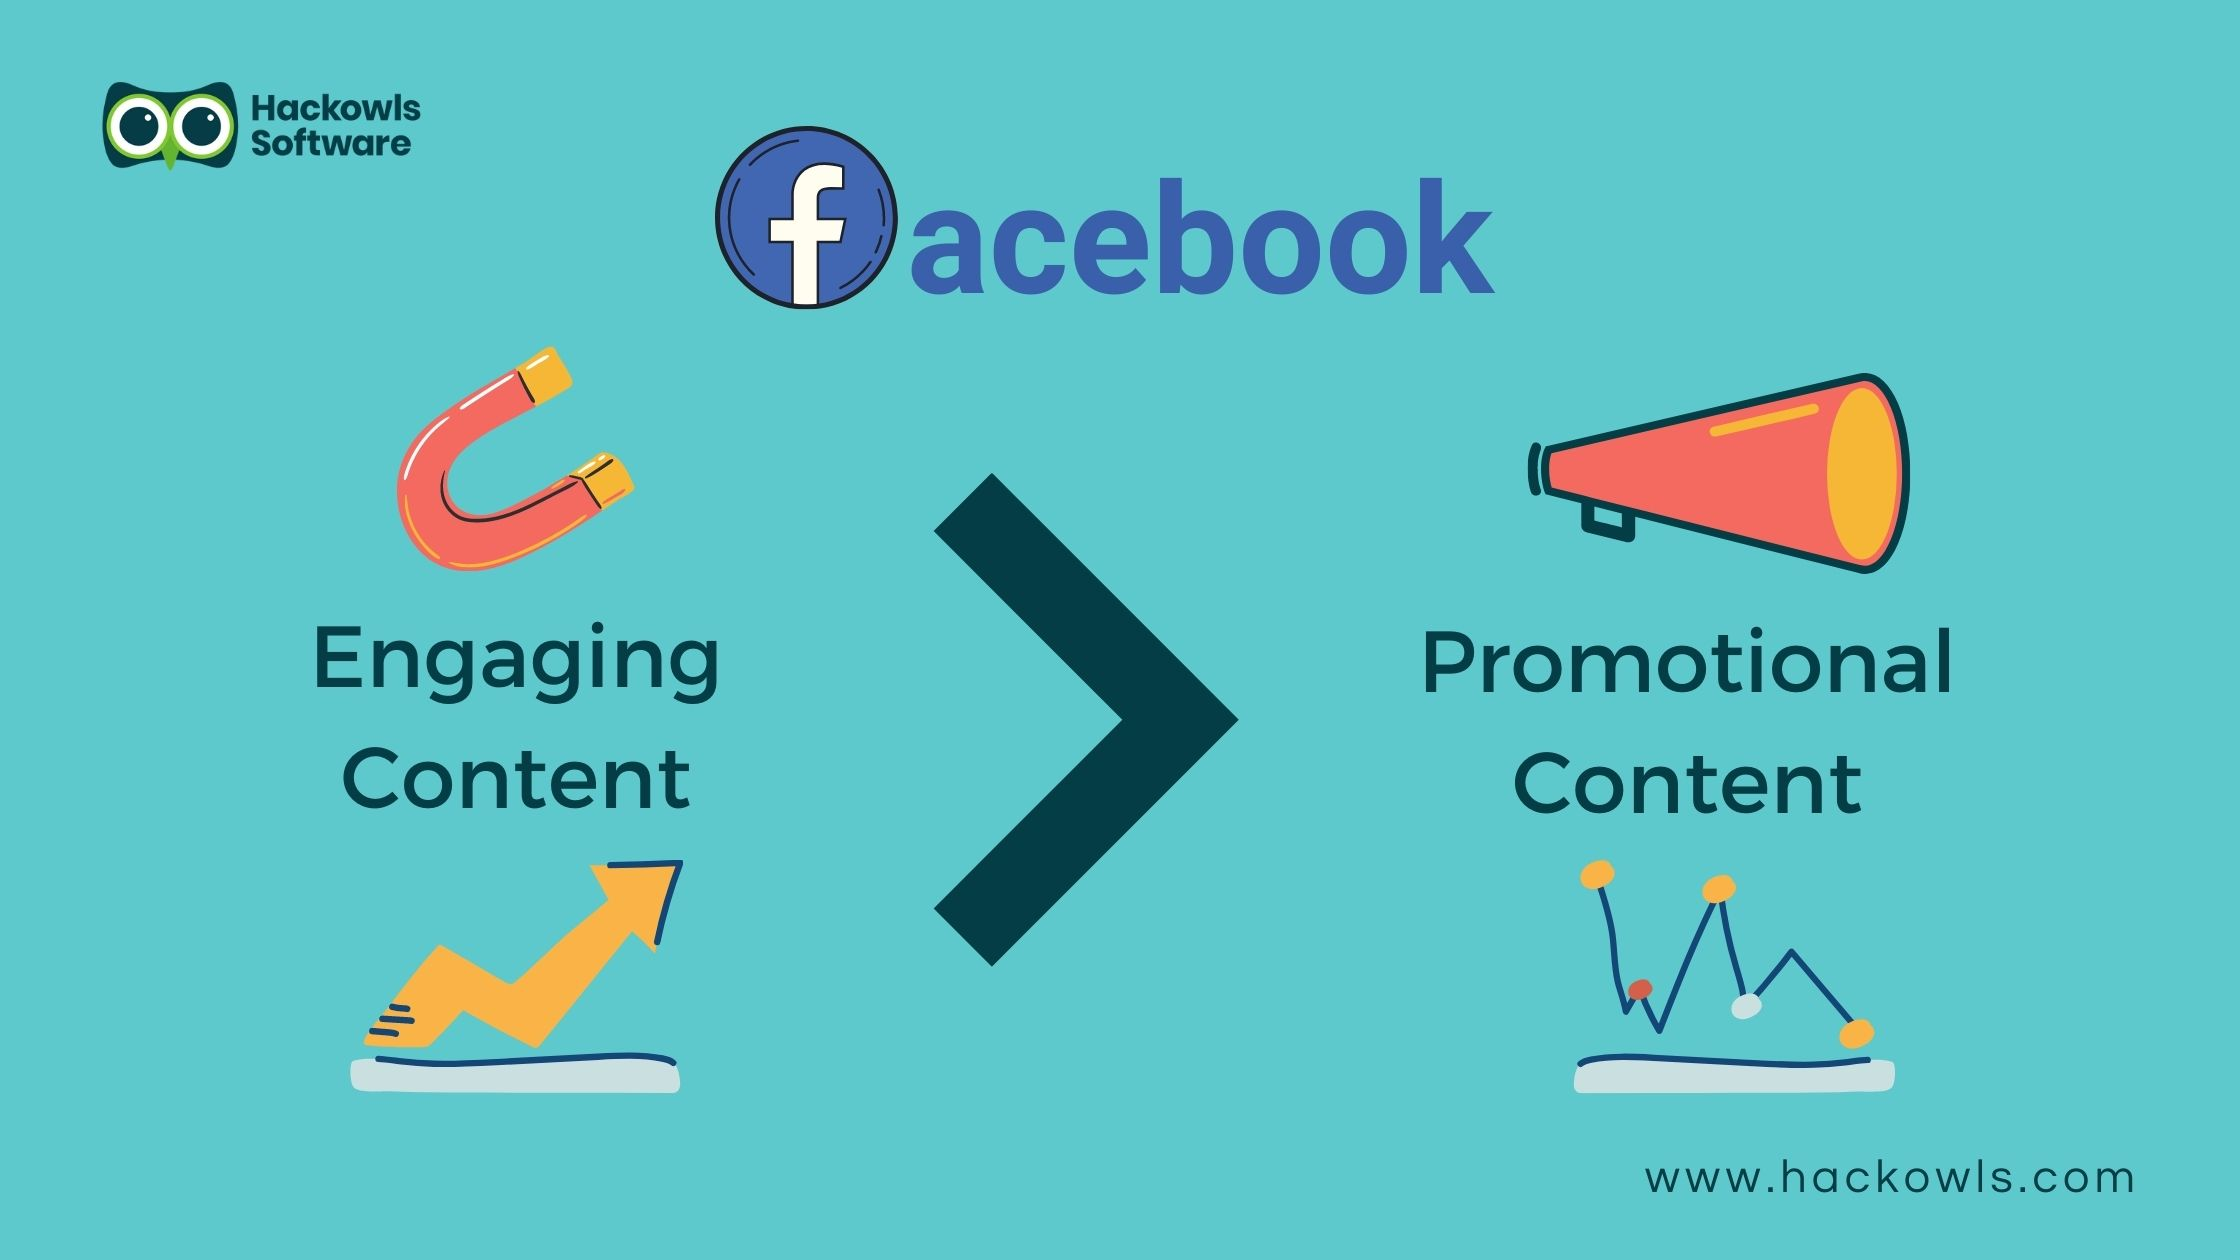 Facebook For Business, Engaging Content Promotional Content